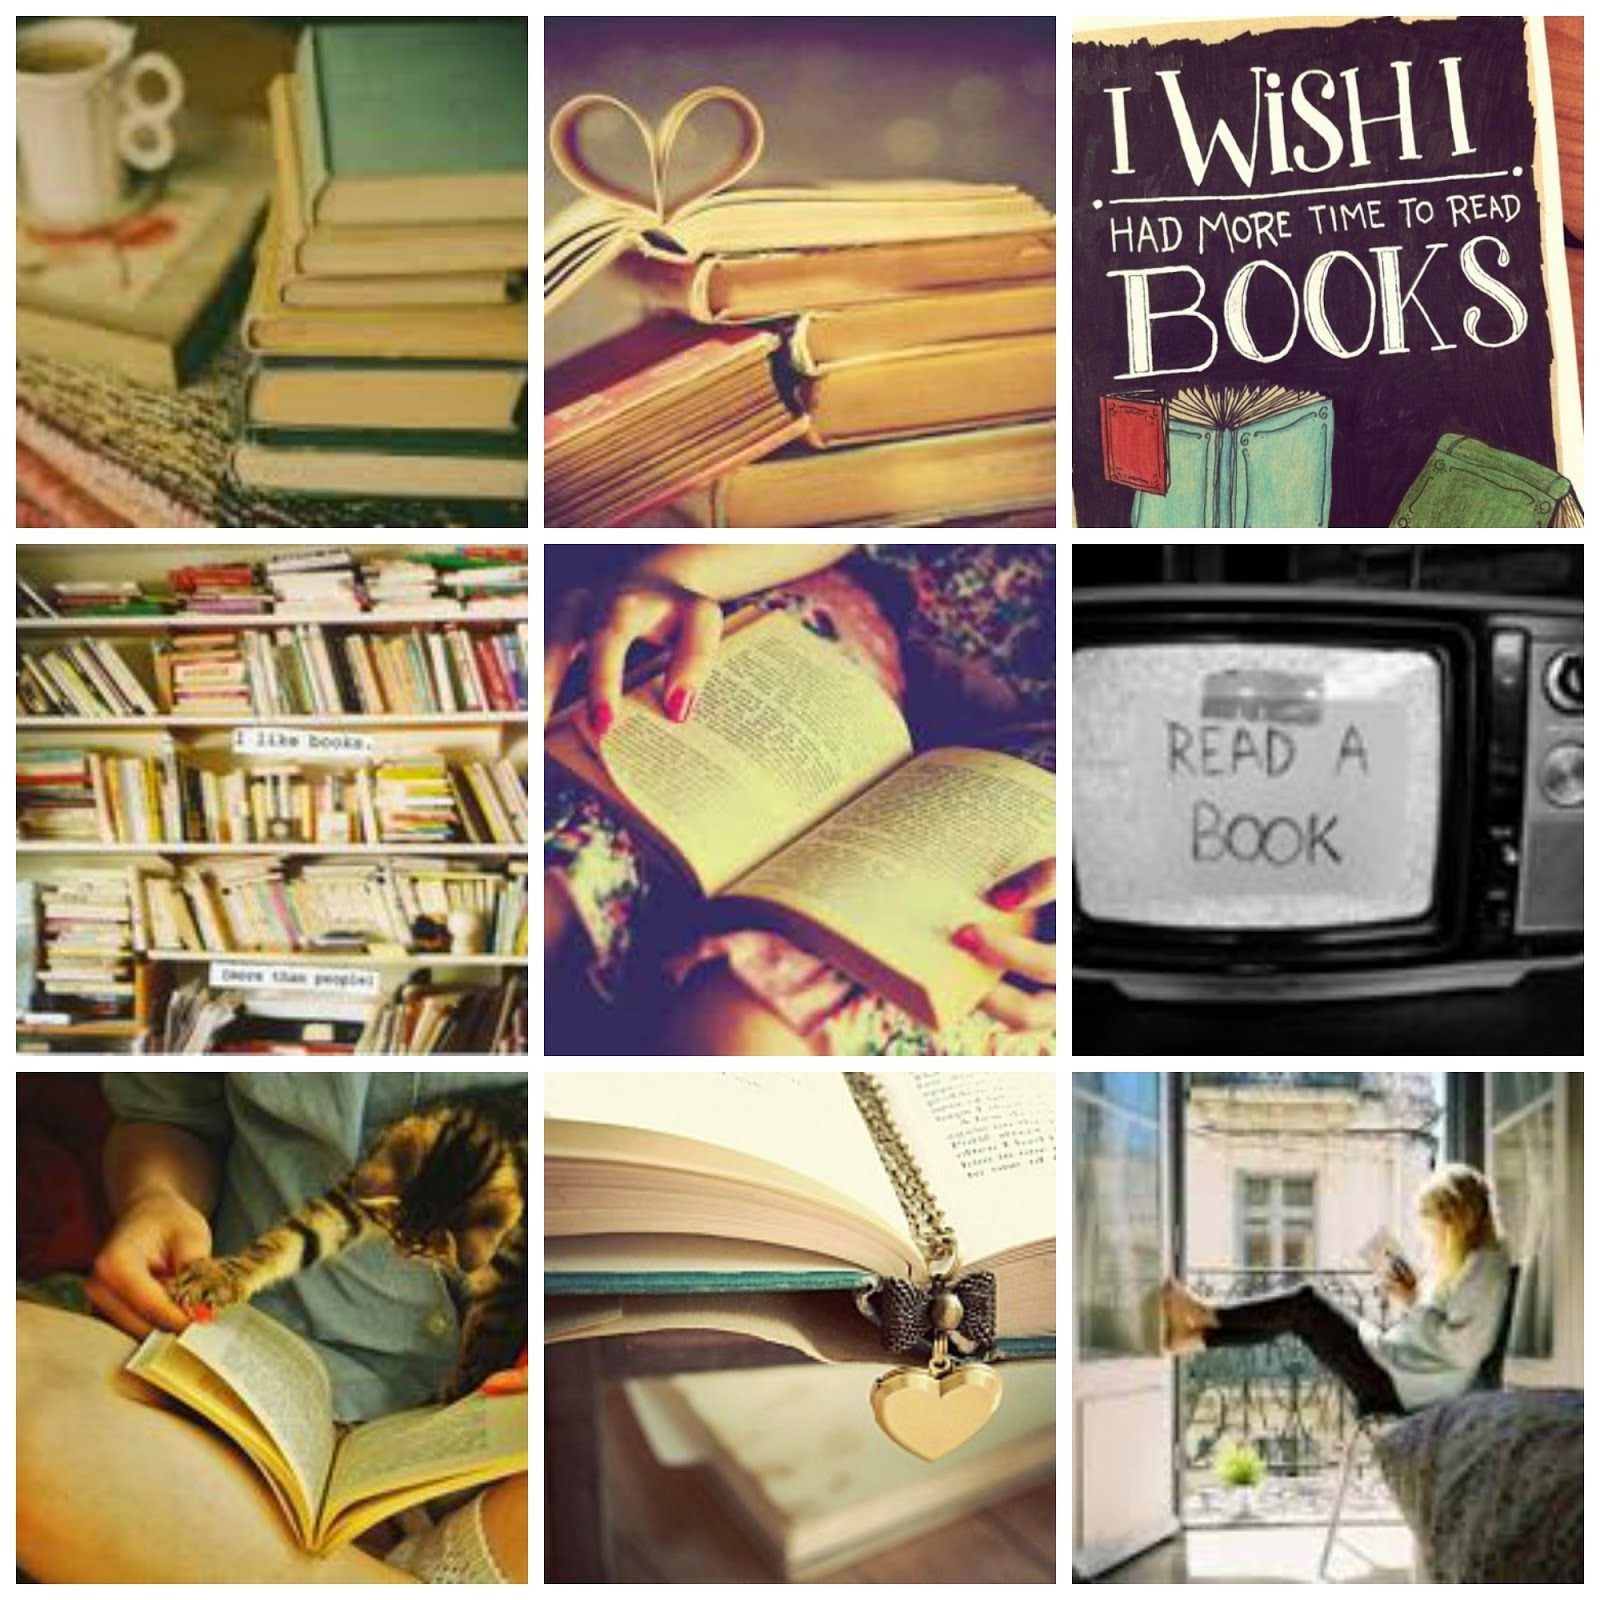 All I need is a book♥